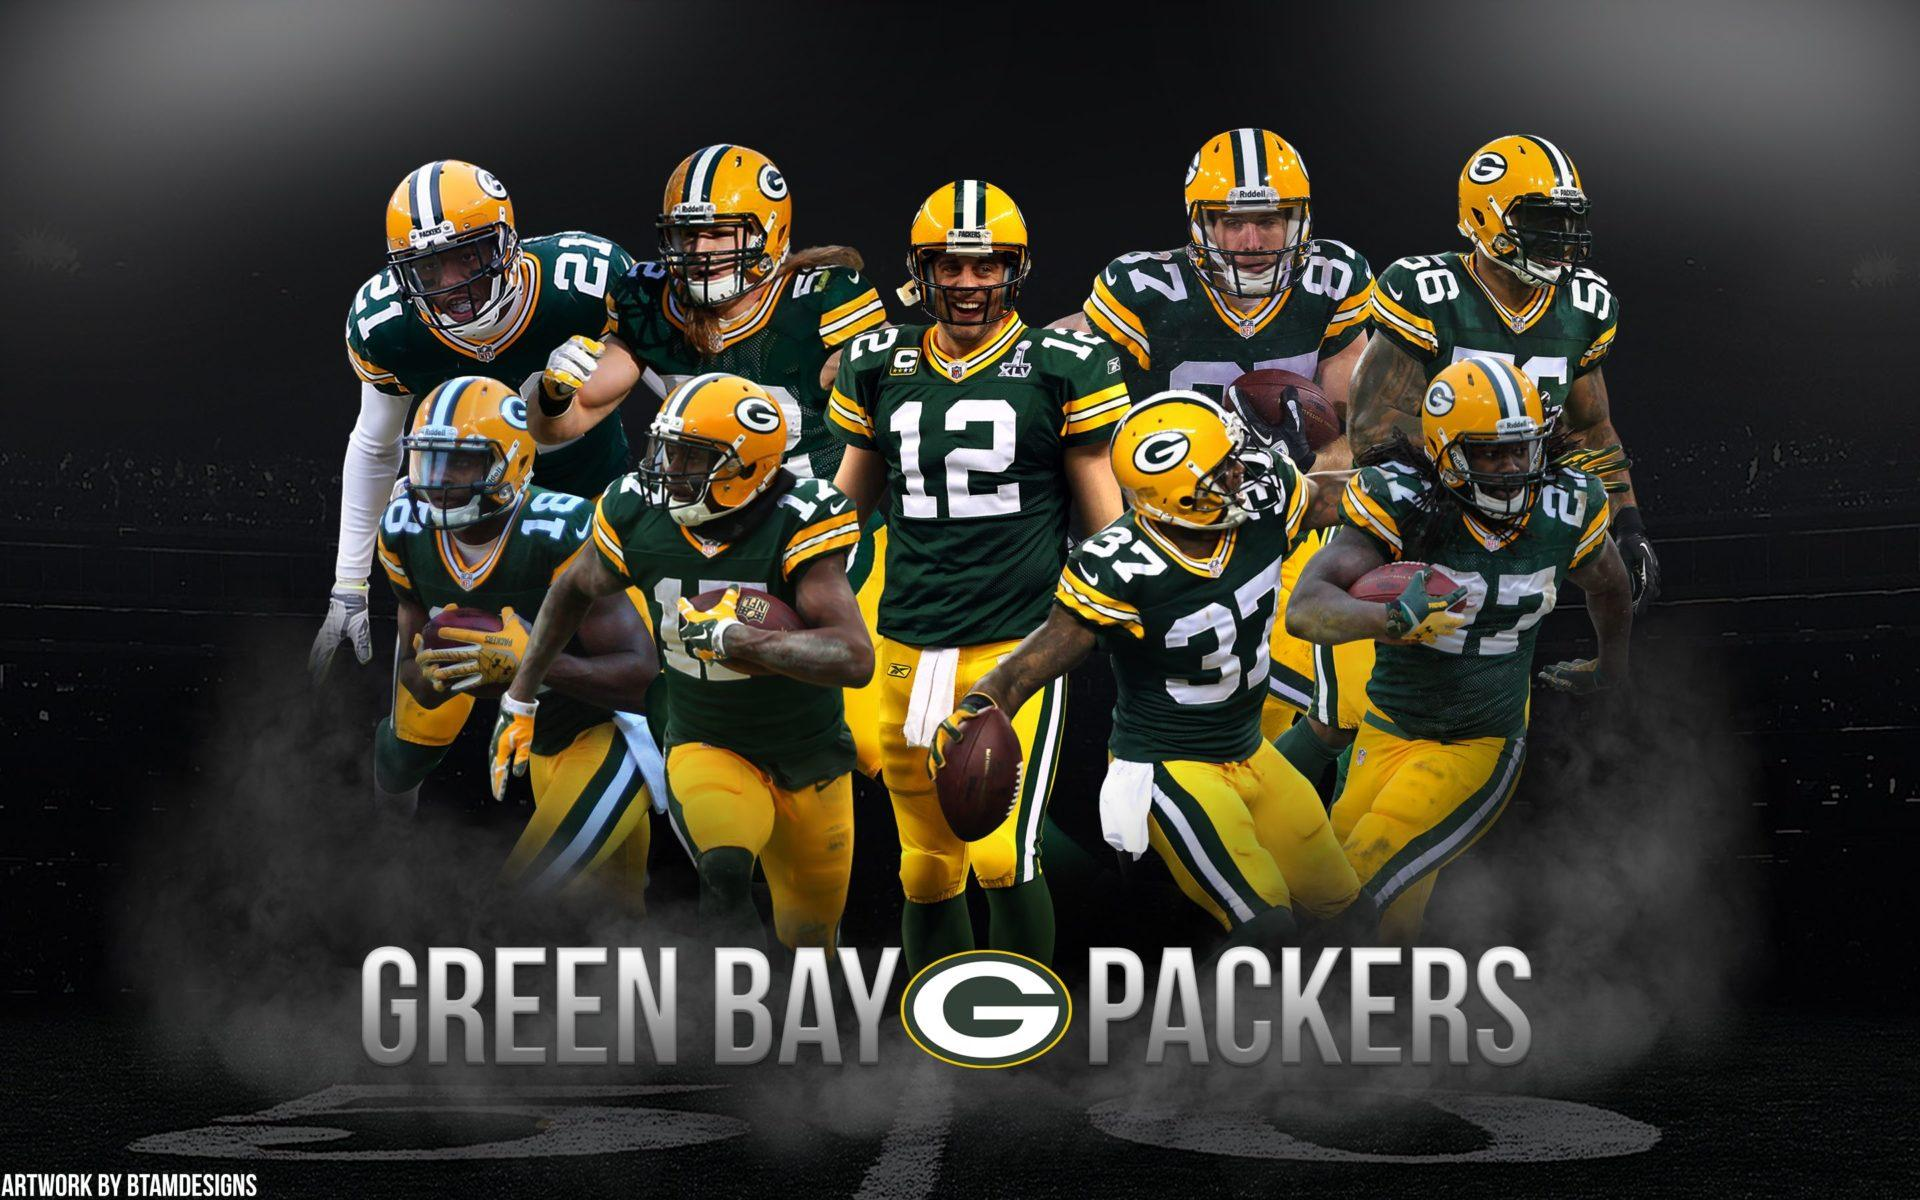 Green Bay Packers 2019 Wallpapers Wallpaper Cave